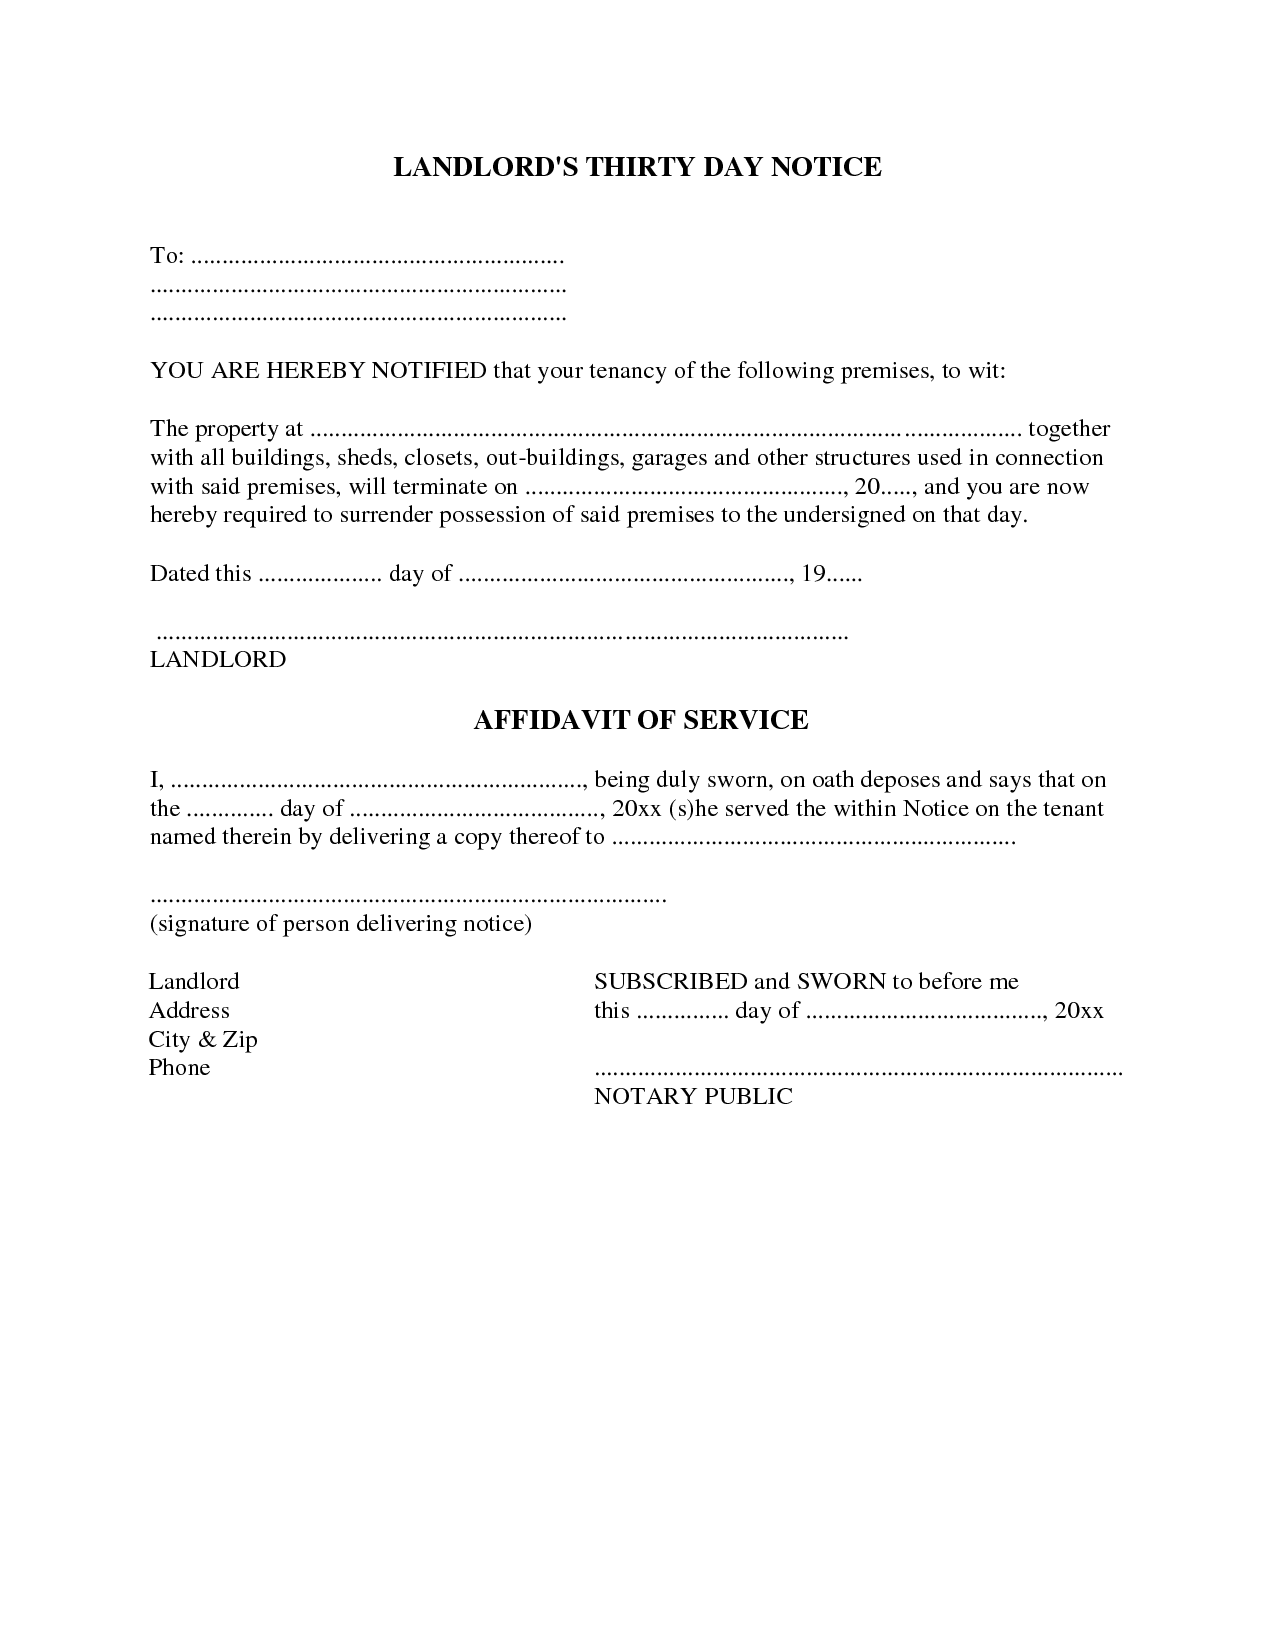 1000 images about Eviction Notice Forms – Letter of Eviction Notice